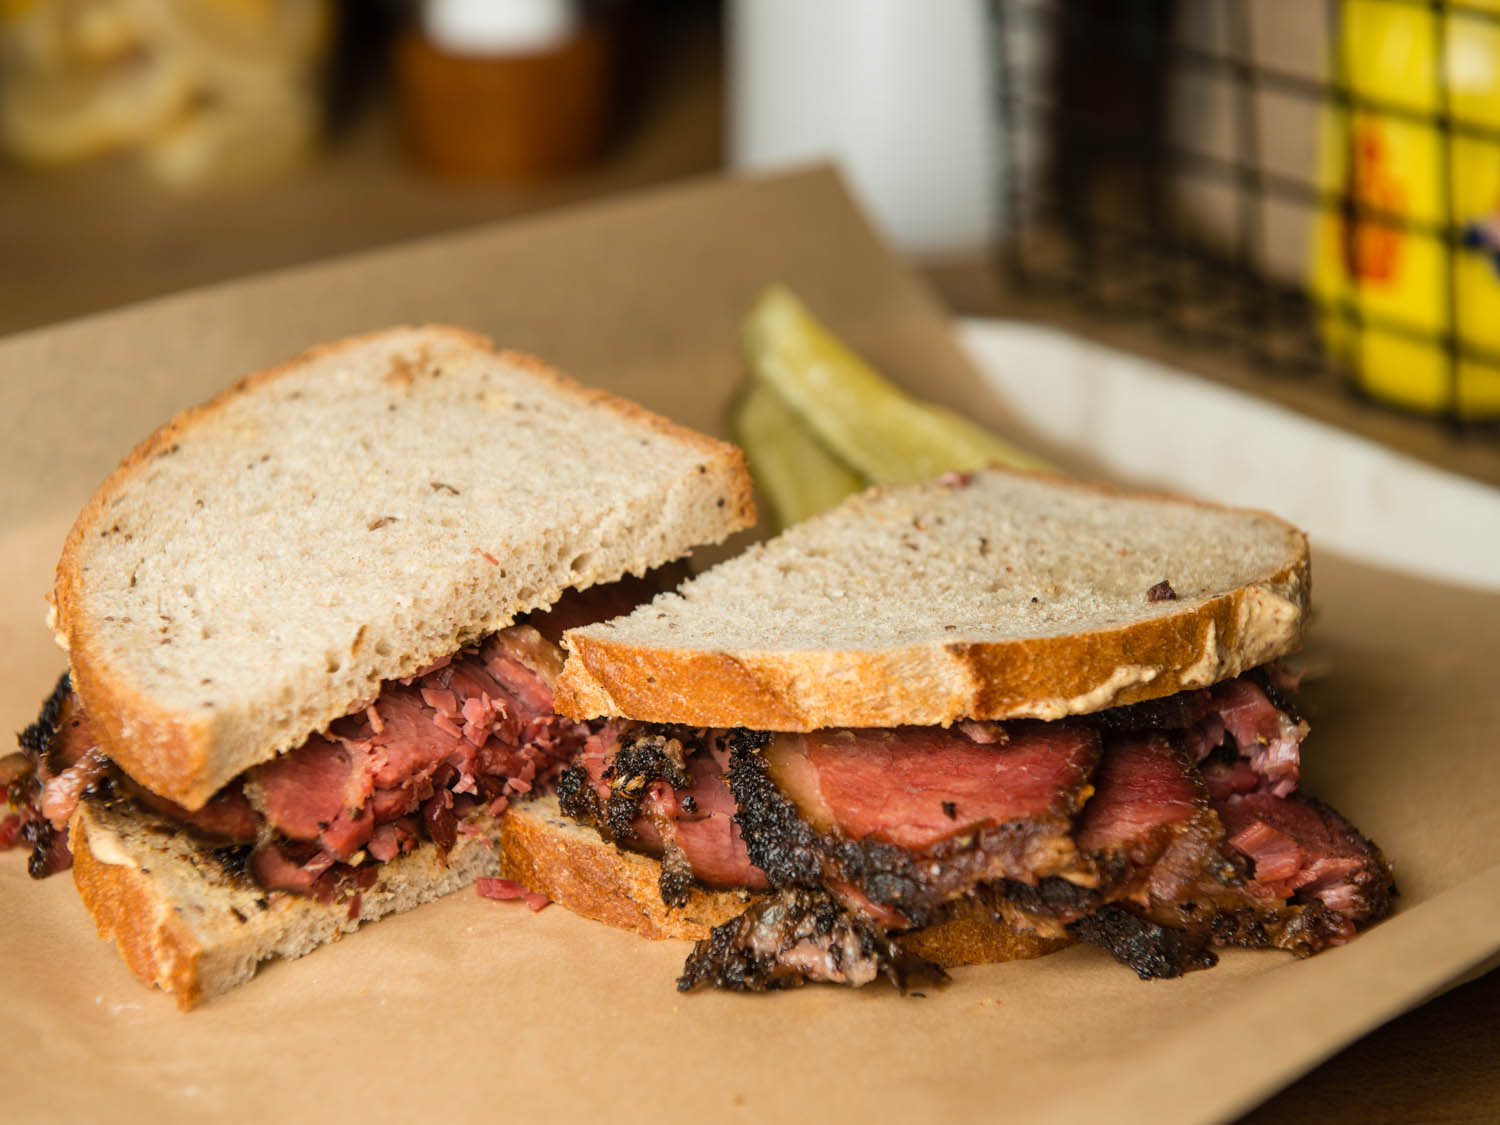 Best Pastrami Sandwiches in New Jersey